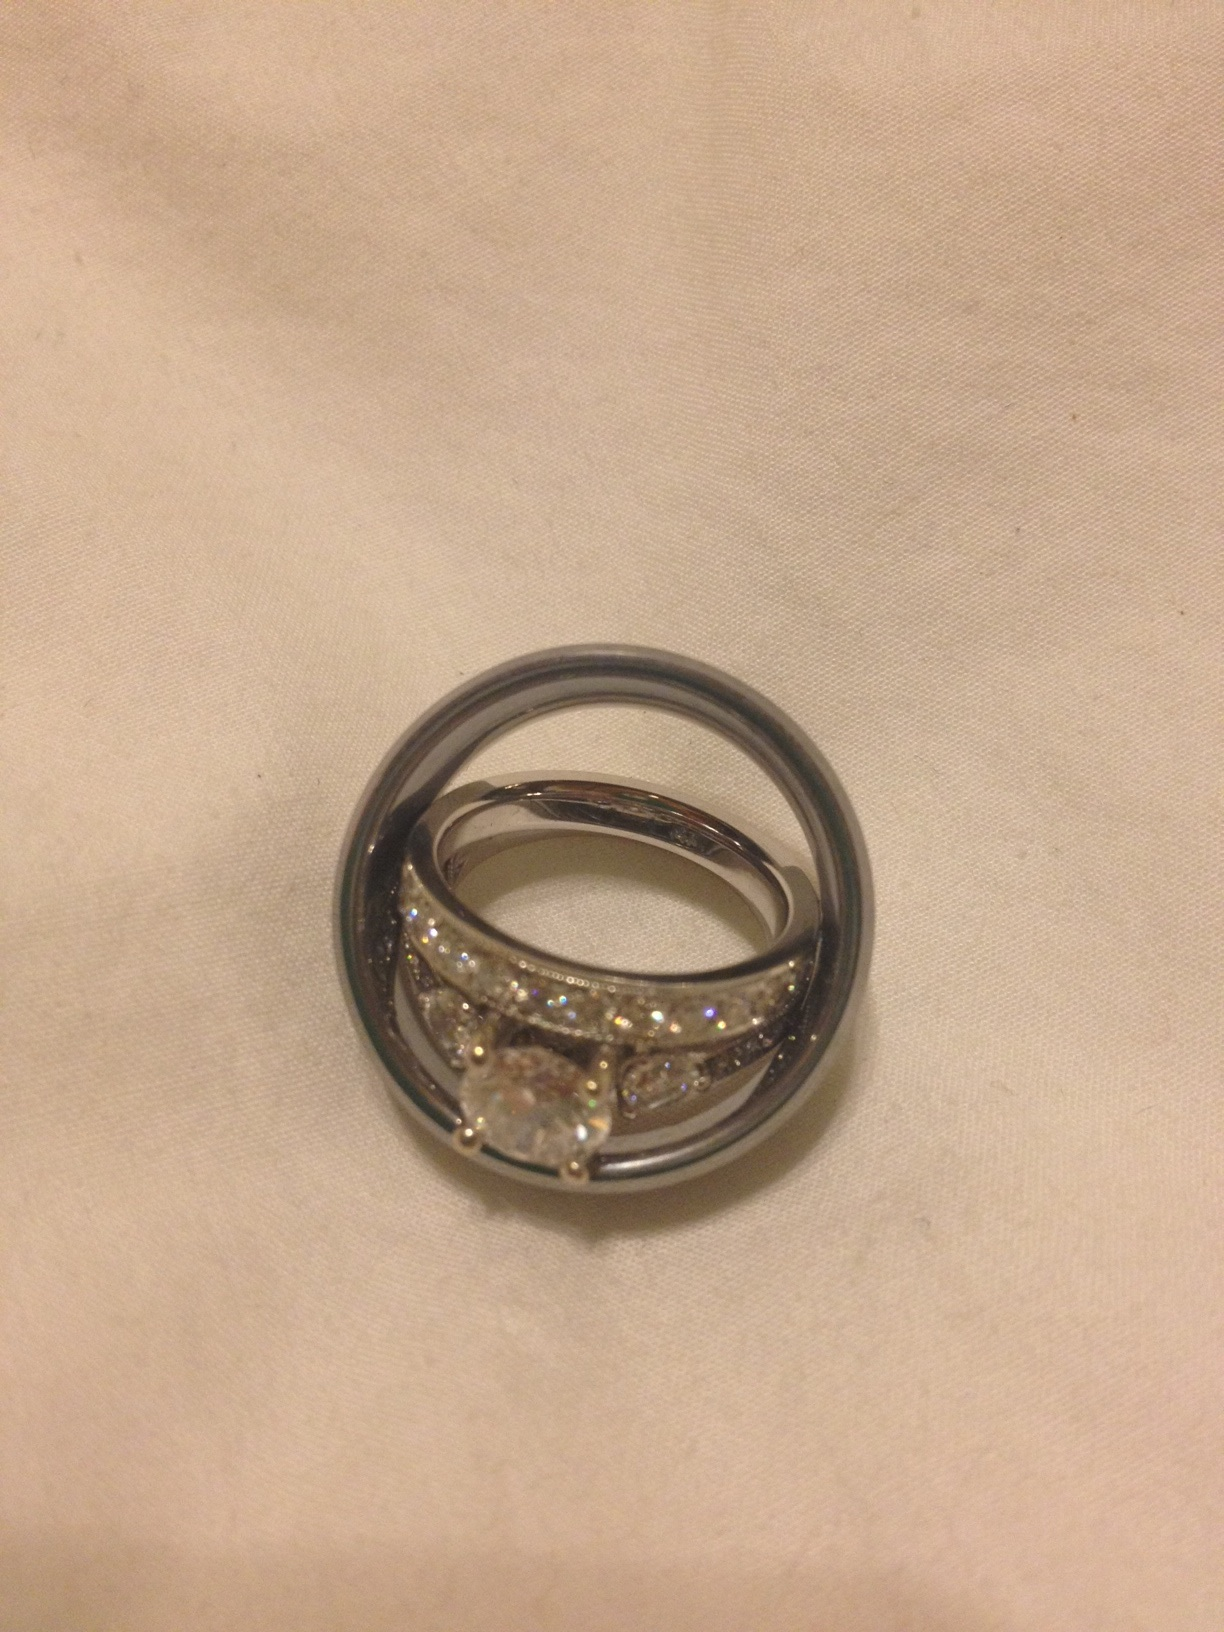 Bride-to-be Blogger Kristy: We Chose Our Wedding Rings!